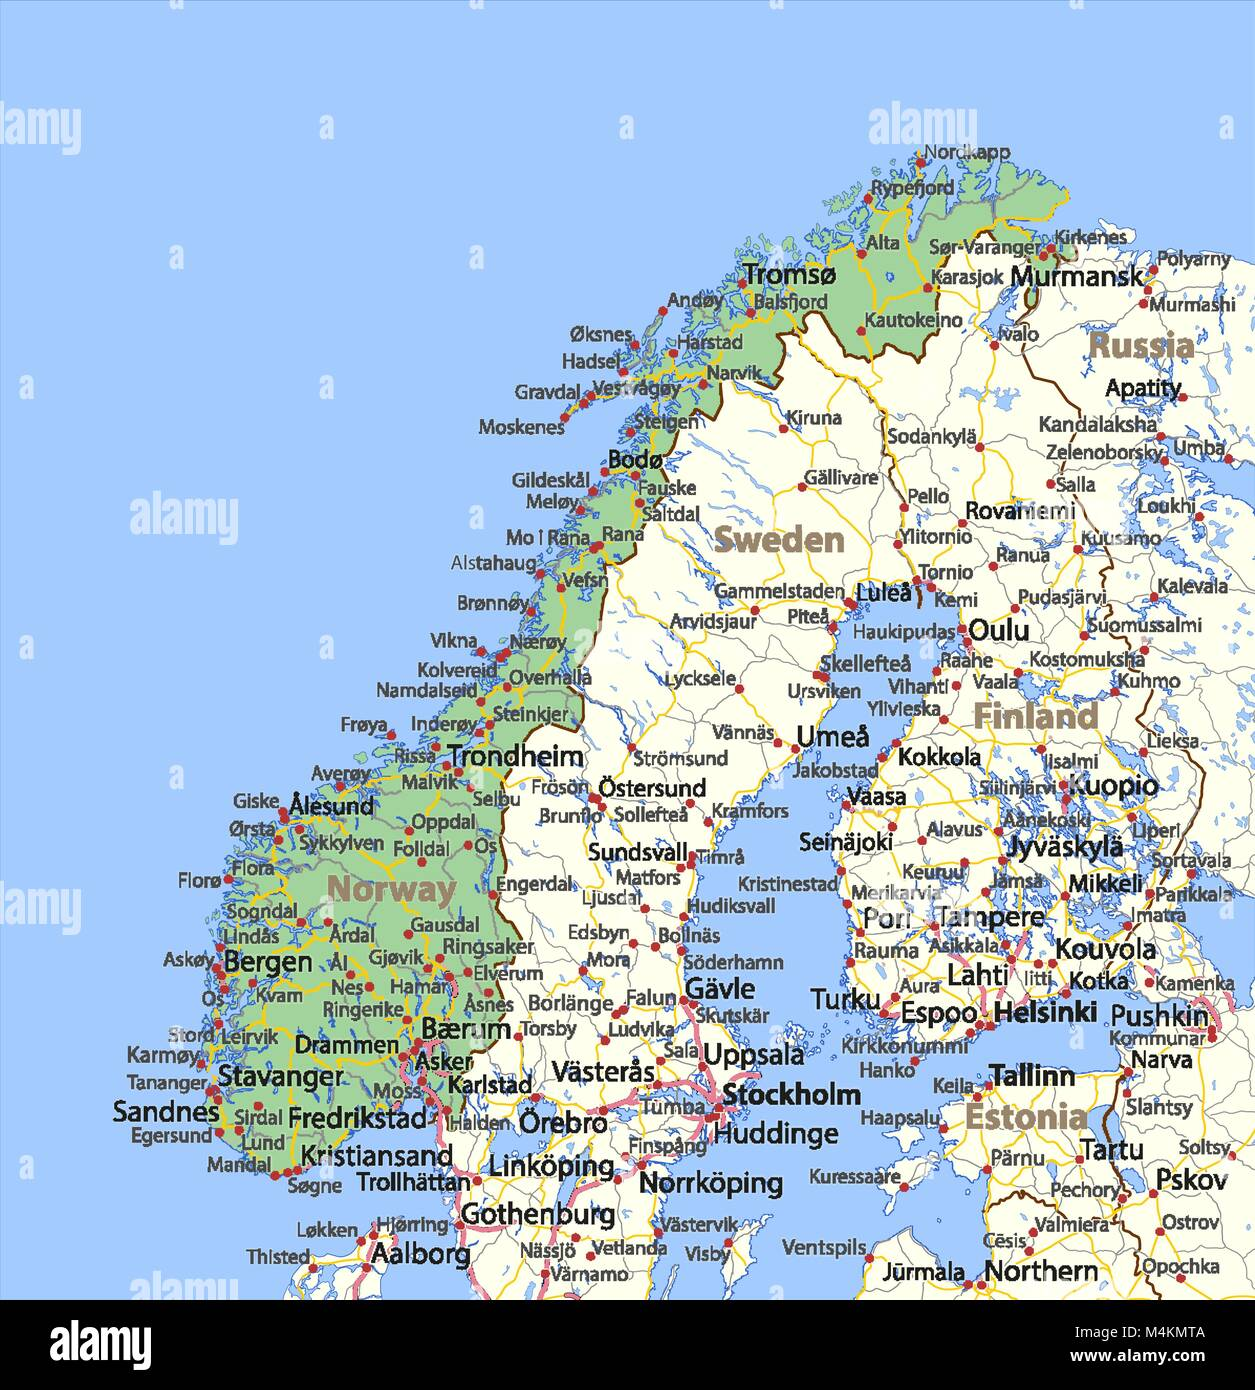 Map of norway shows country borders urban areas place names and map of norway shows country borders urban areas place names and roads labels in english where possible projection lambert conformal conic gumiabroncs Choice Image